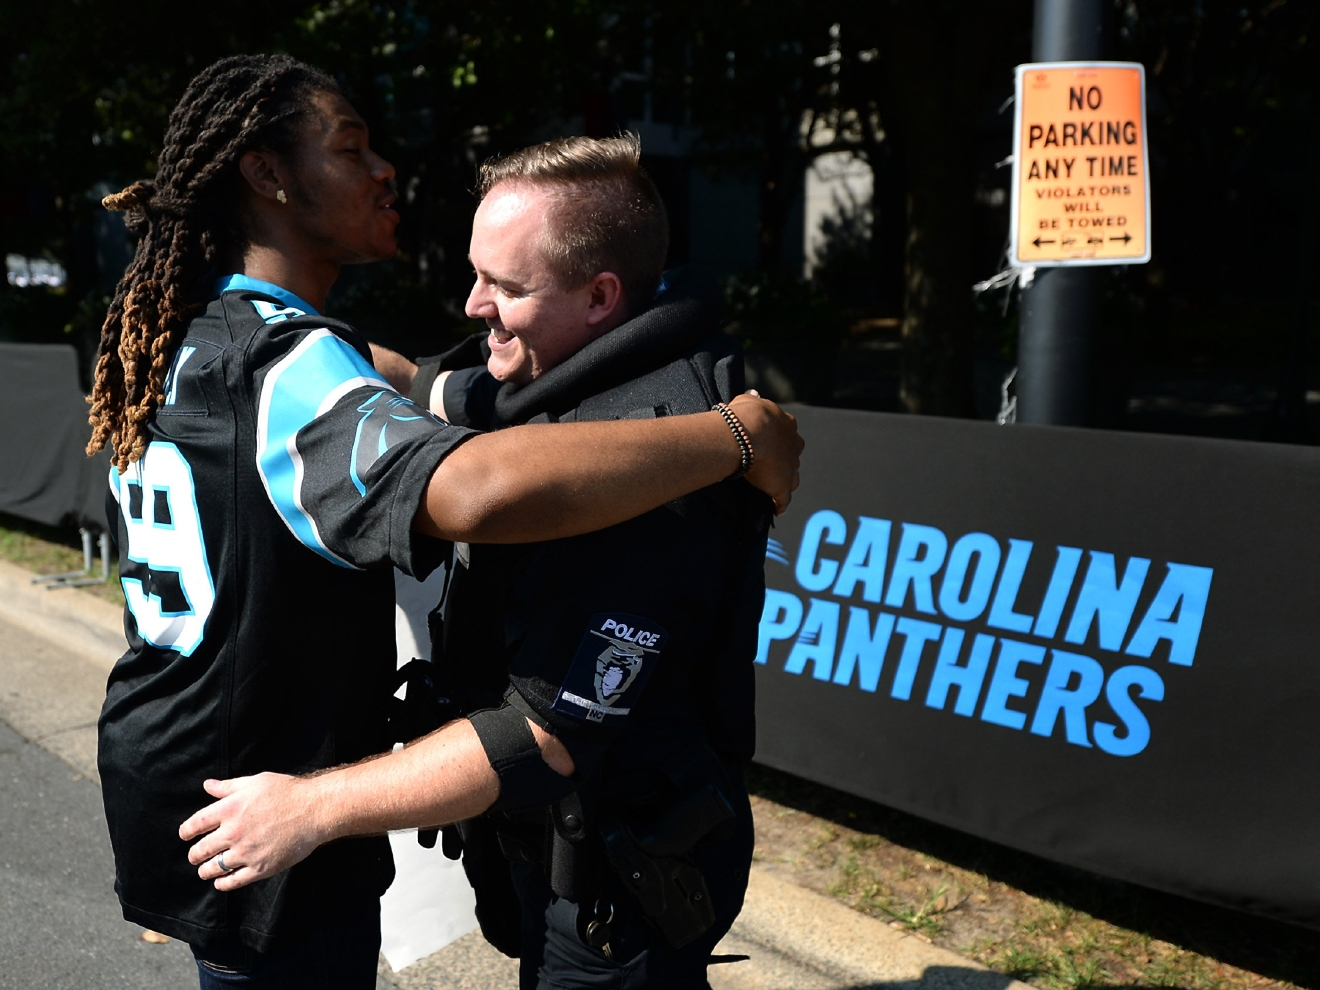 JaGerran Knight, of Charlotte, N.C., left, reaches out to hug a police officer at Bank of America Stadium, where people protest, prior to an NFL football game between the Minnesota Vikings and the Carolina Panthers in Charlotte, N.C., Sunday, Sept. 25, 2016. When the national anthem was played, the protesters all dropped to one knee as many NFL players have been doing for weeks to call attention to issues, including police shootings. (Jeff Siner/The Charlotte Observer via AP)